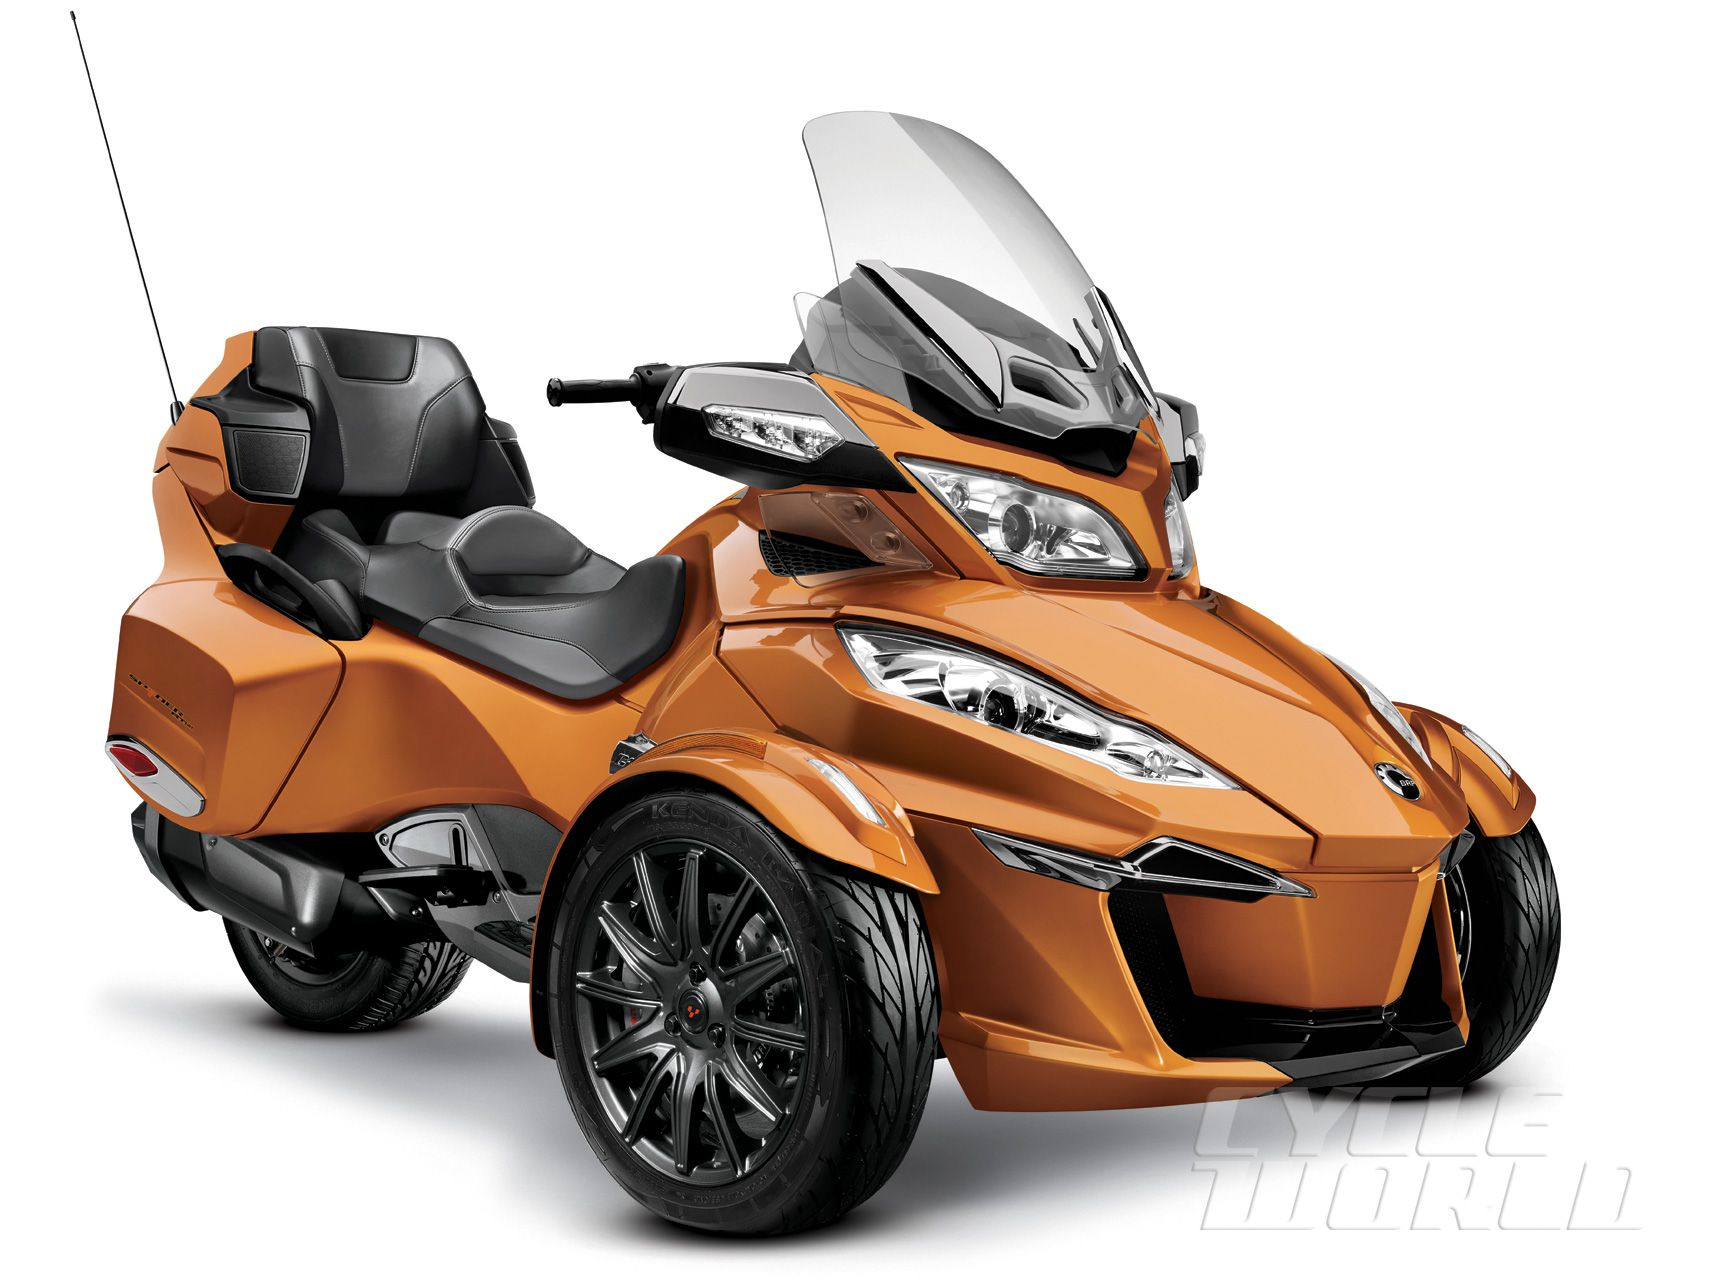 2014 Can-Am Spyder RT-S- Three-Wheel Touring Motorcycle